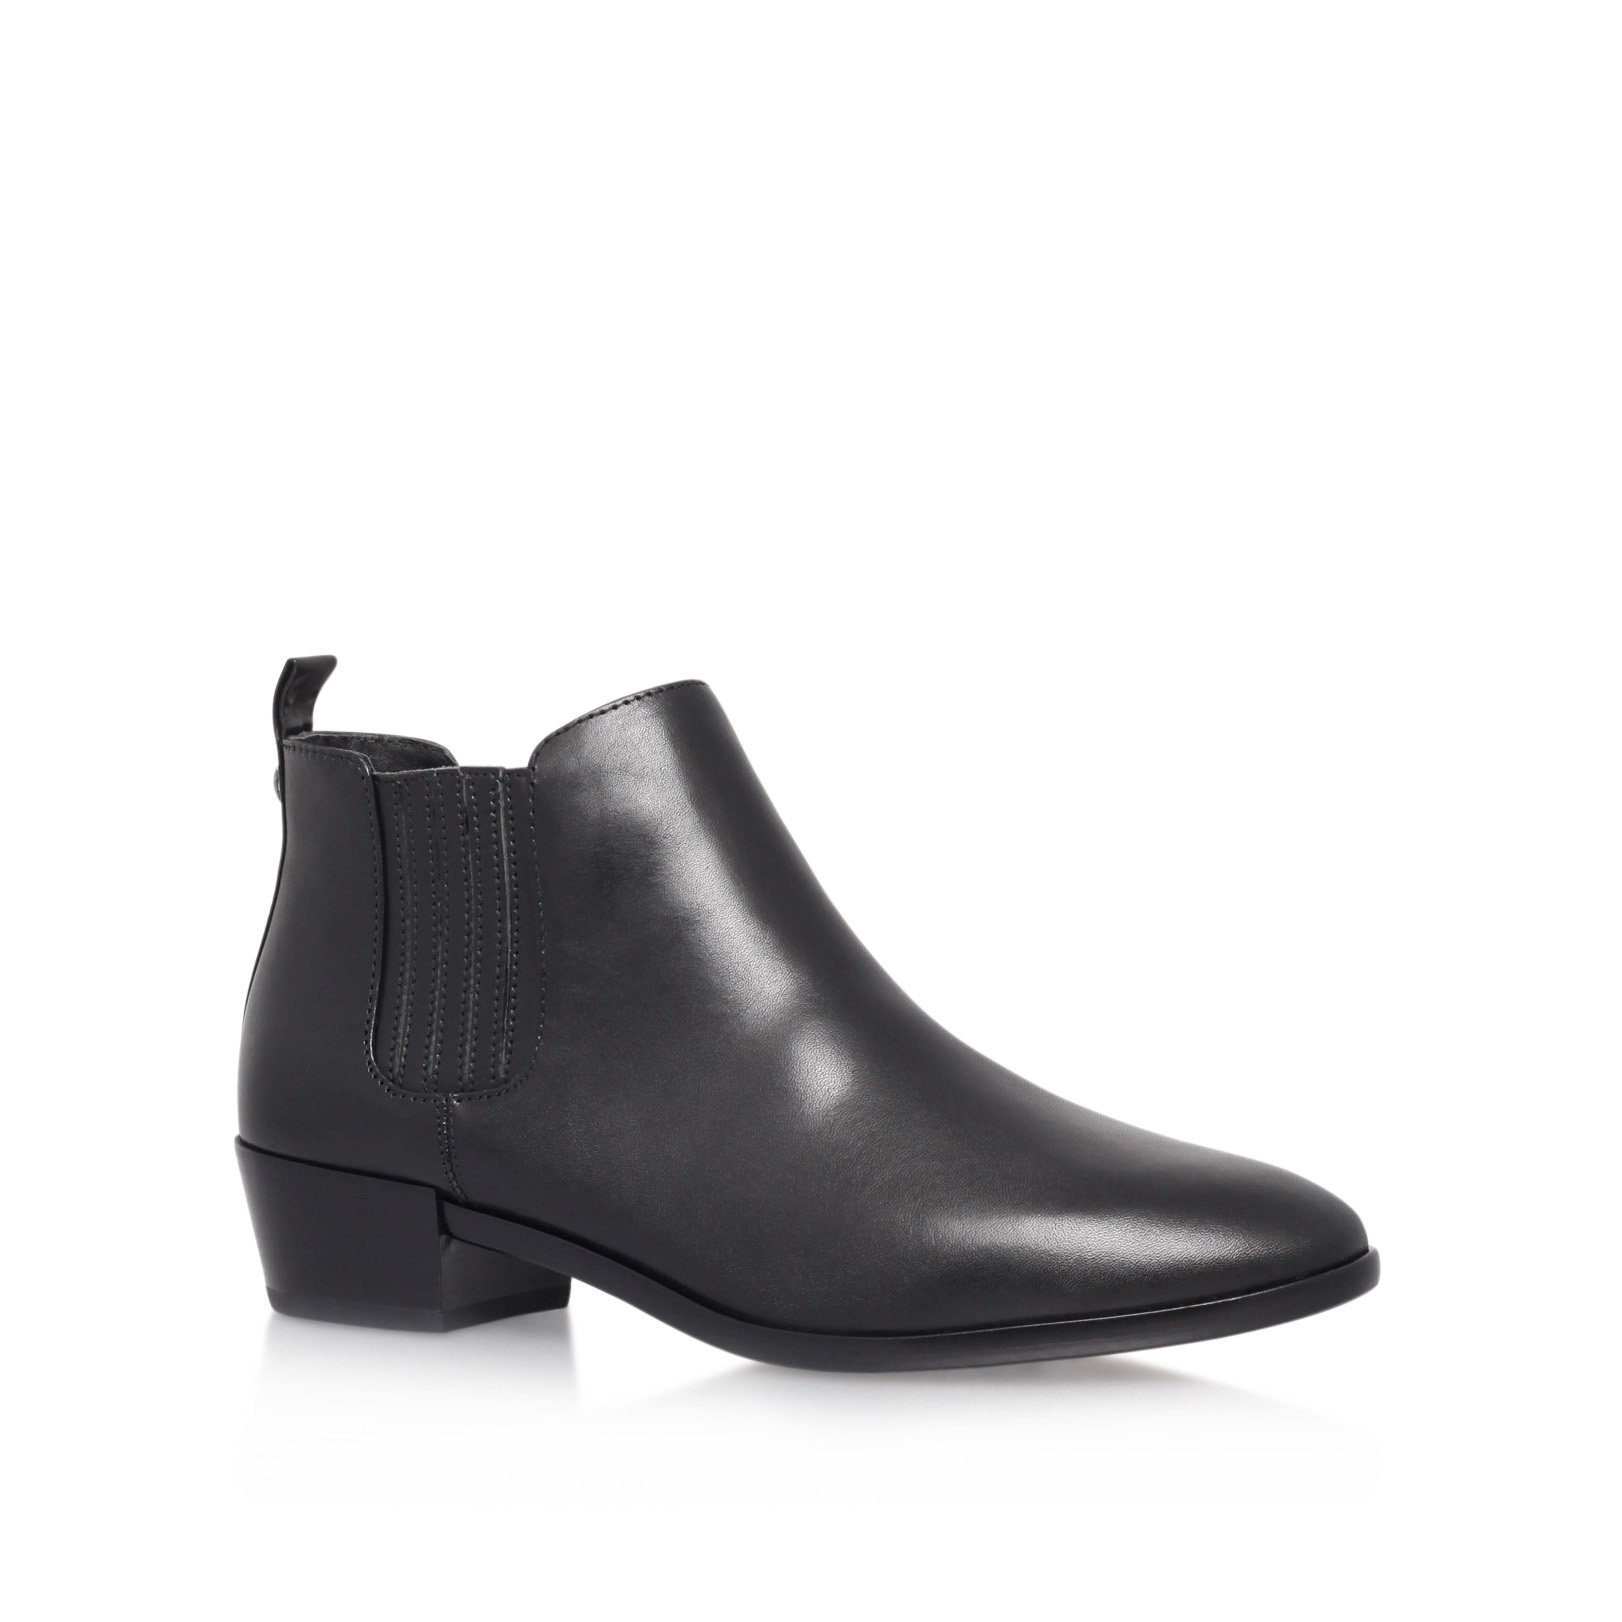 SHAW FLAT BOOTIE